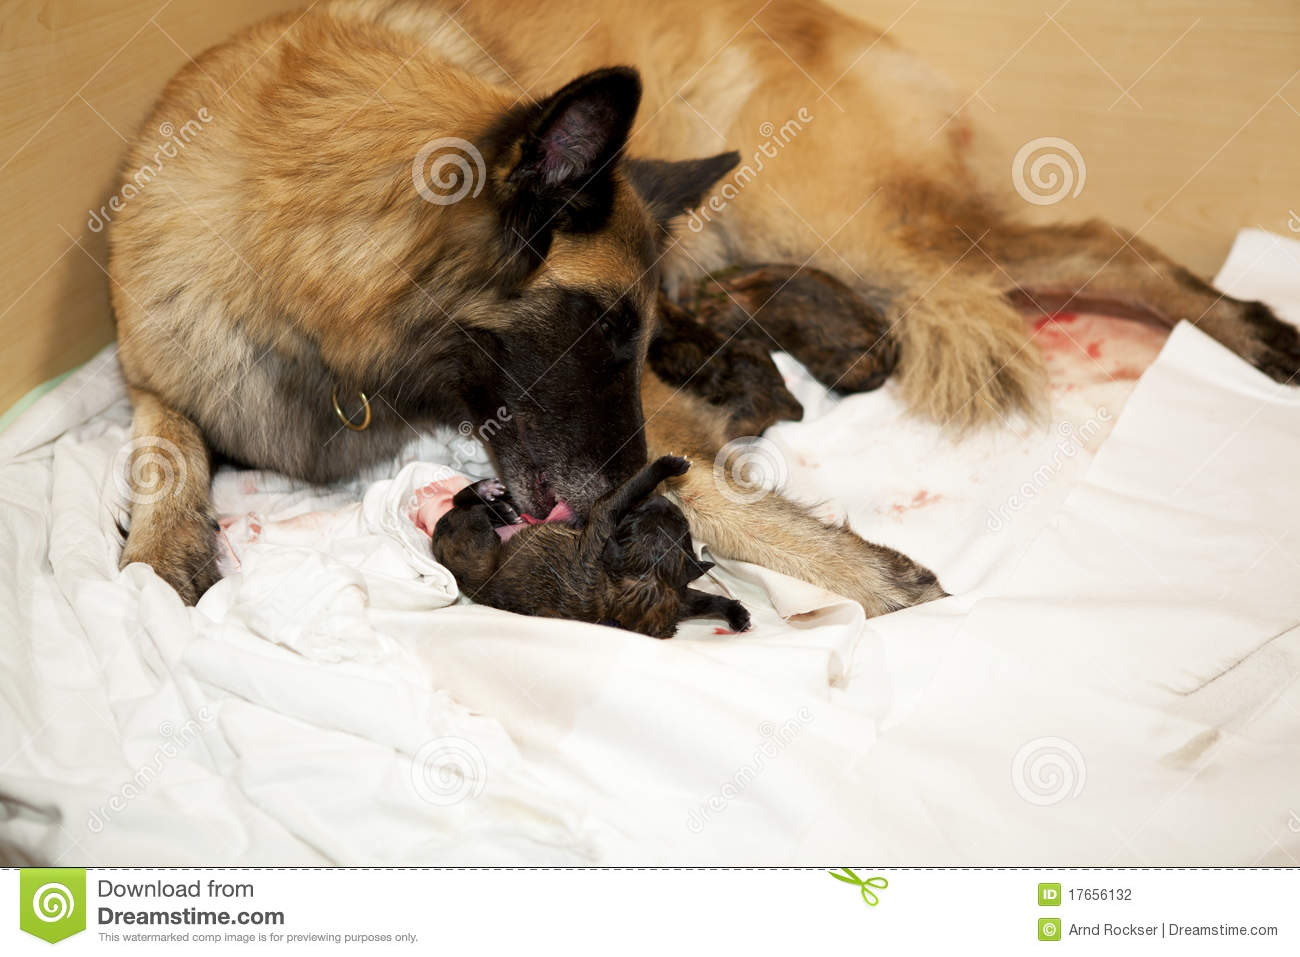 Dog Taking Care Of Newborn Puppy Stock Photography - Image: 17656132